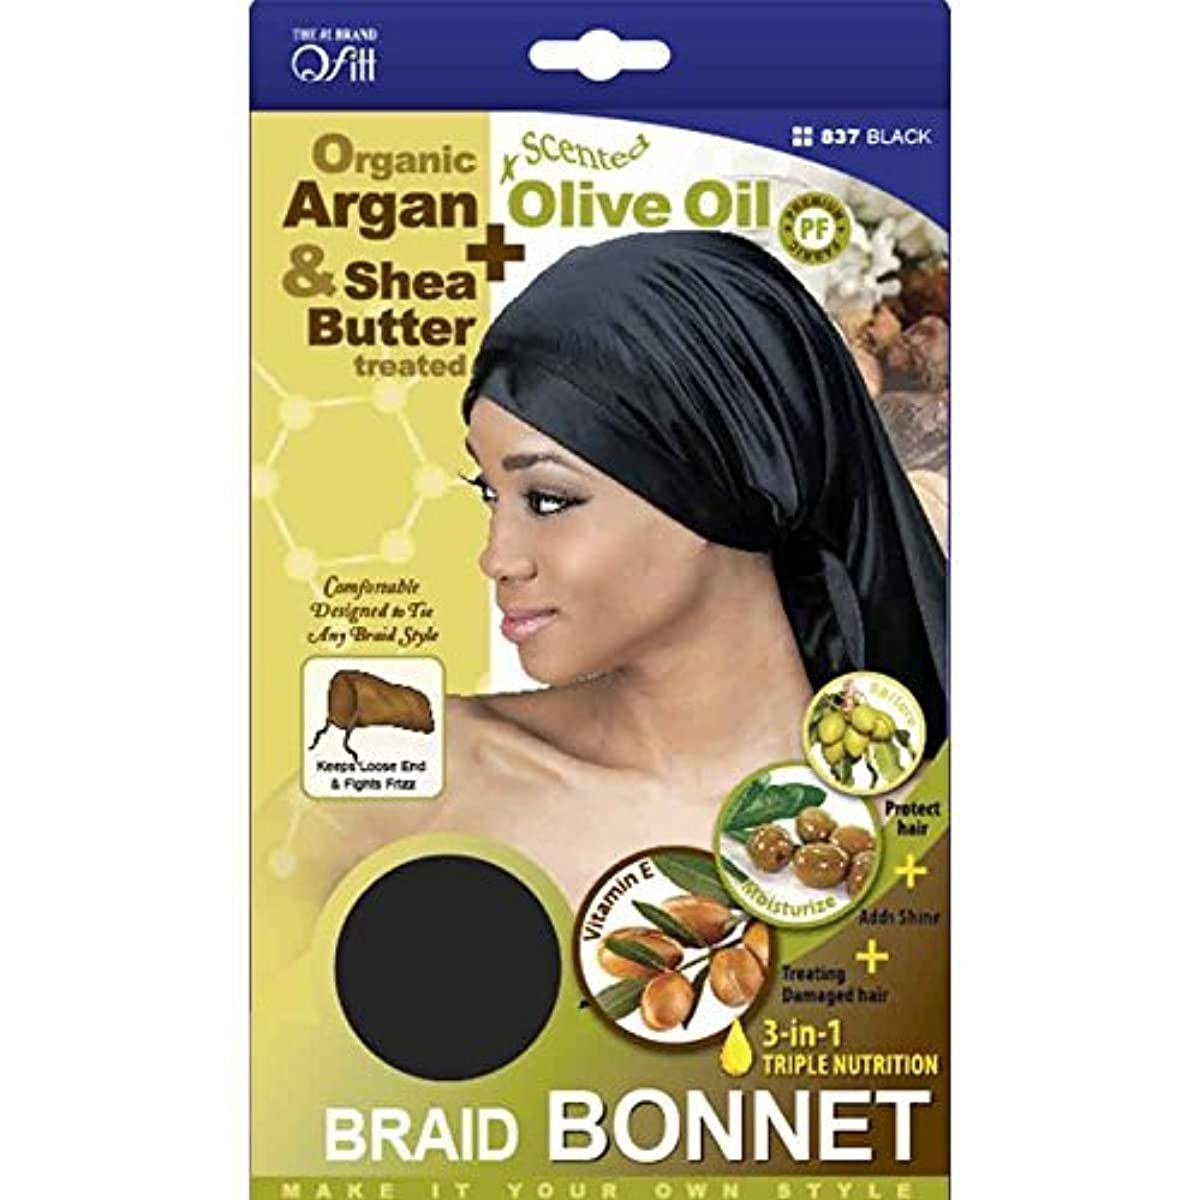 (3 Pack) Qfitt – Premium Braid Bonnet #837